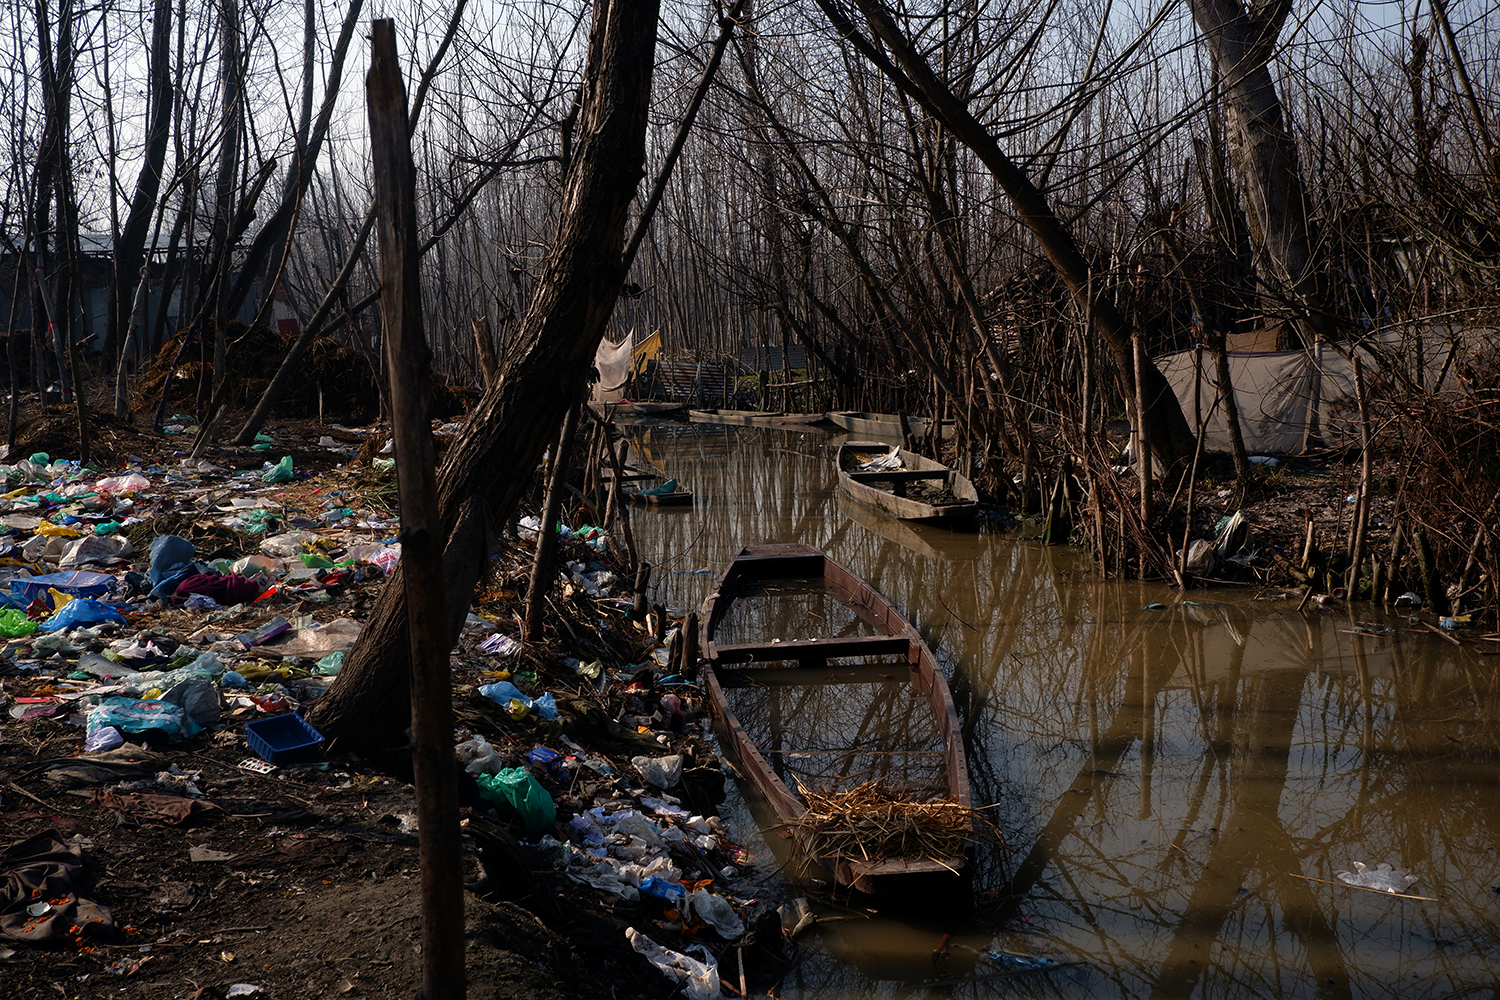 The bank of Anchar Lake is surrounded with garbage and polyethylene bags in Srinagar, Jammu and Kashmir, on Feb. 16.